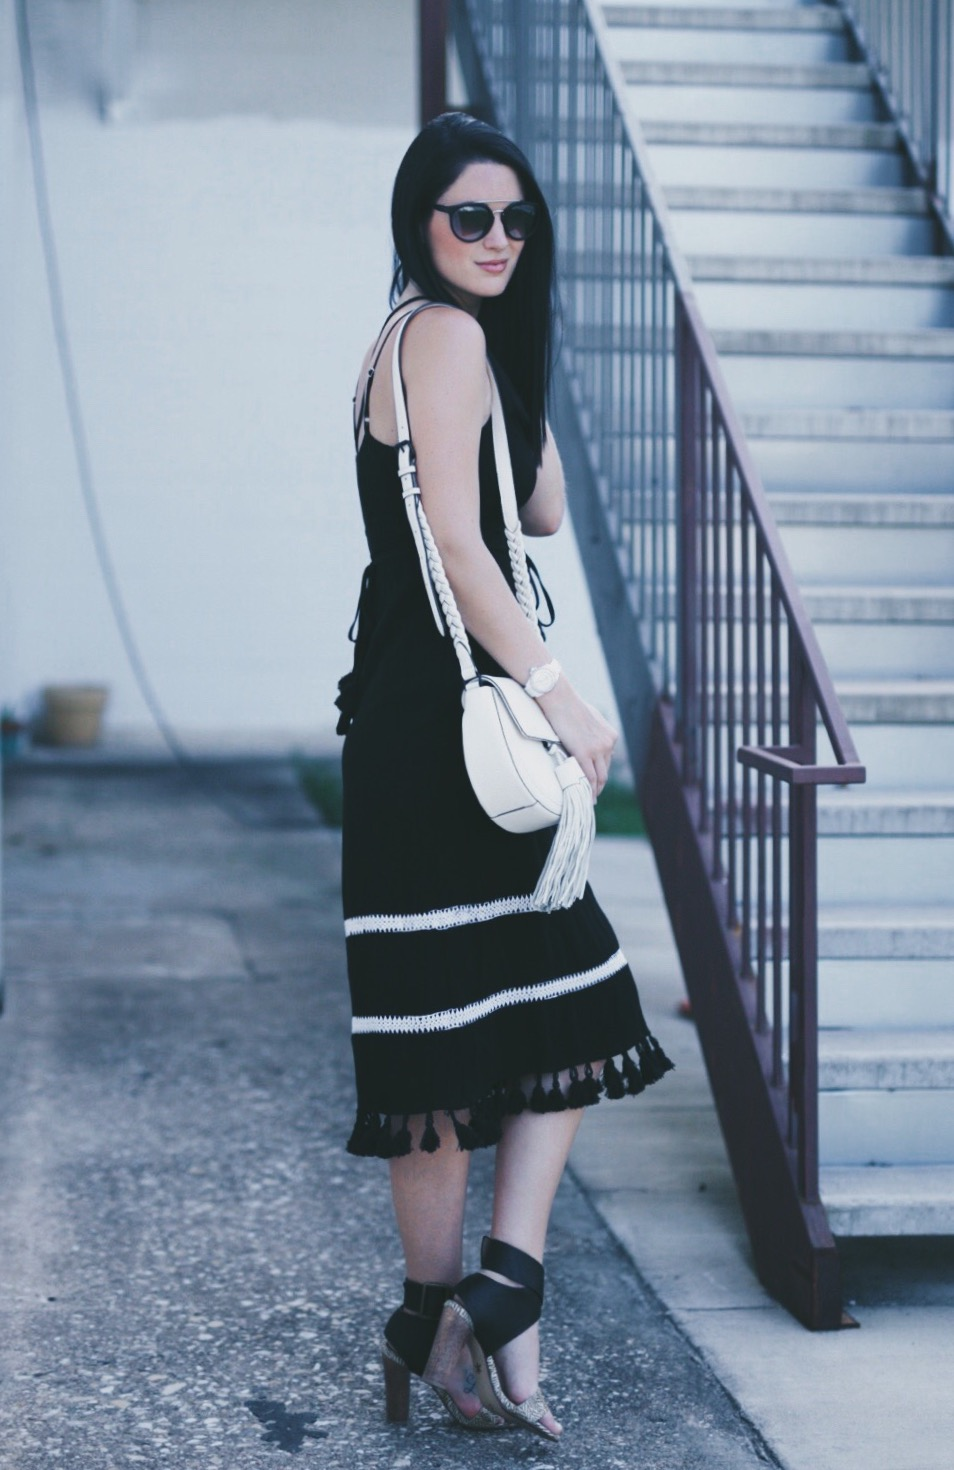 Tassle Black Dress | summer fashion tips | summer outfit ideas | summer style tips | what to wear for summer | warm weather fashion | fashion for summer | style tips for summer | outfit ideas for summer || Dressed to Kill